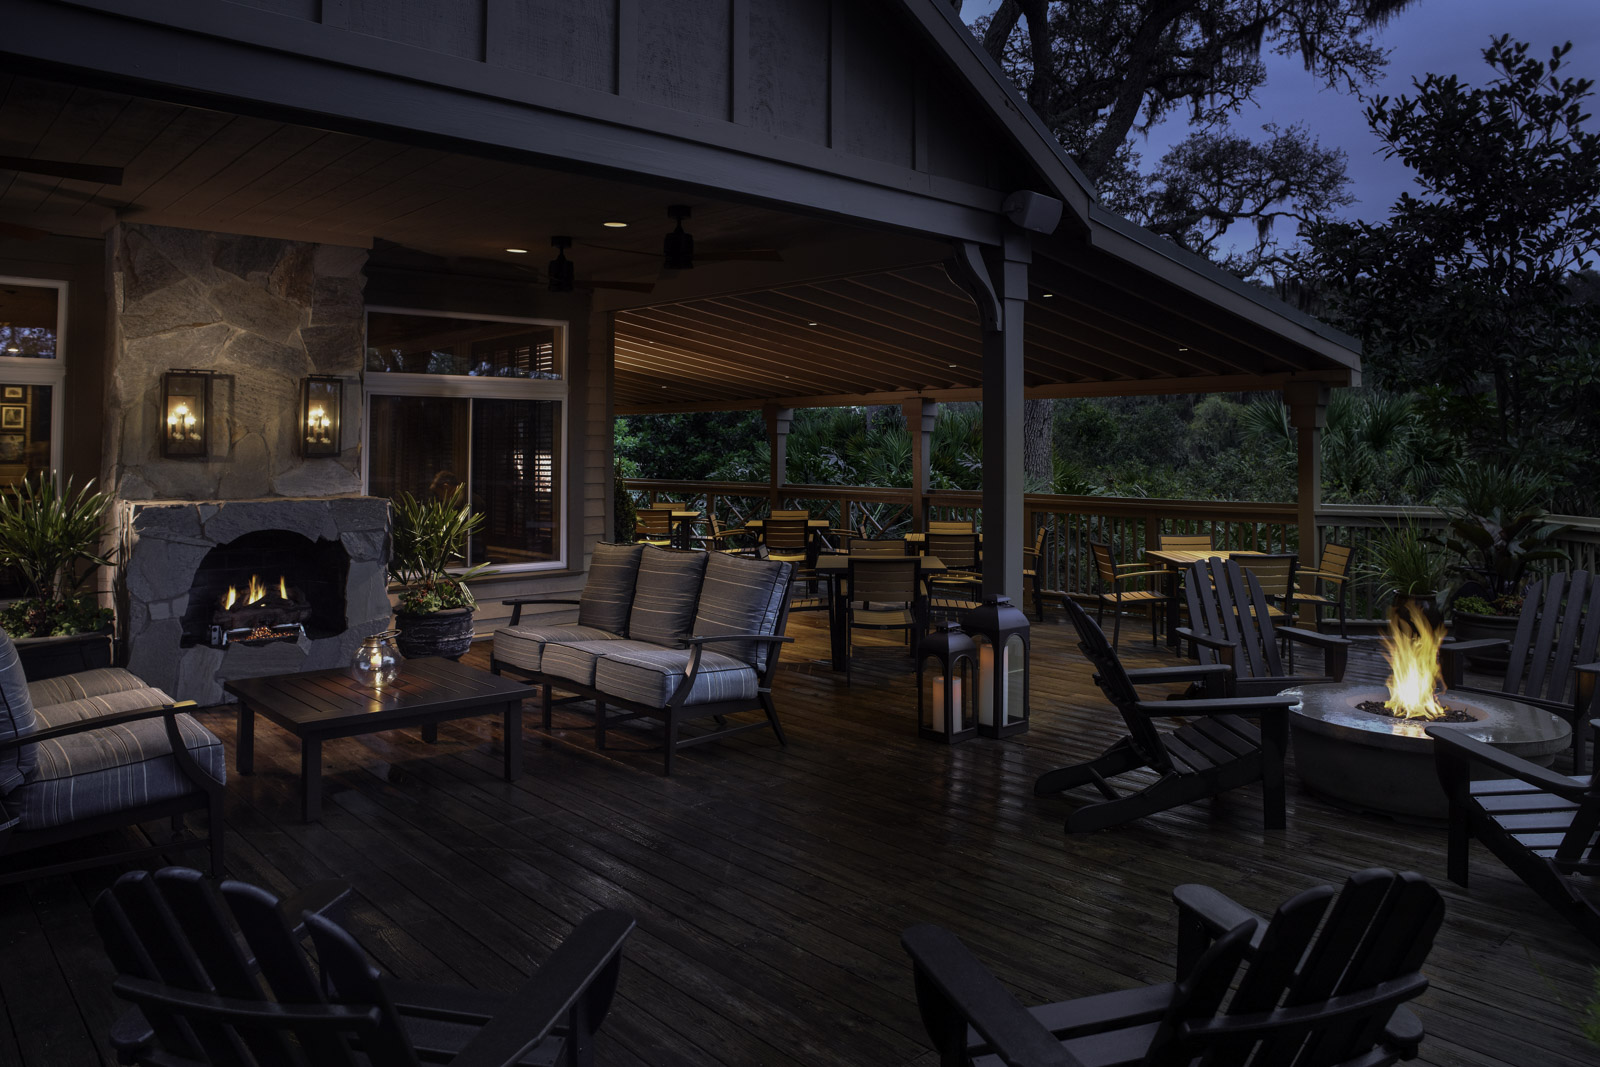 Bob's Steak & Chop House - Amelia Island, FL (Balcony & Sitting Area)